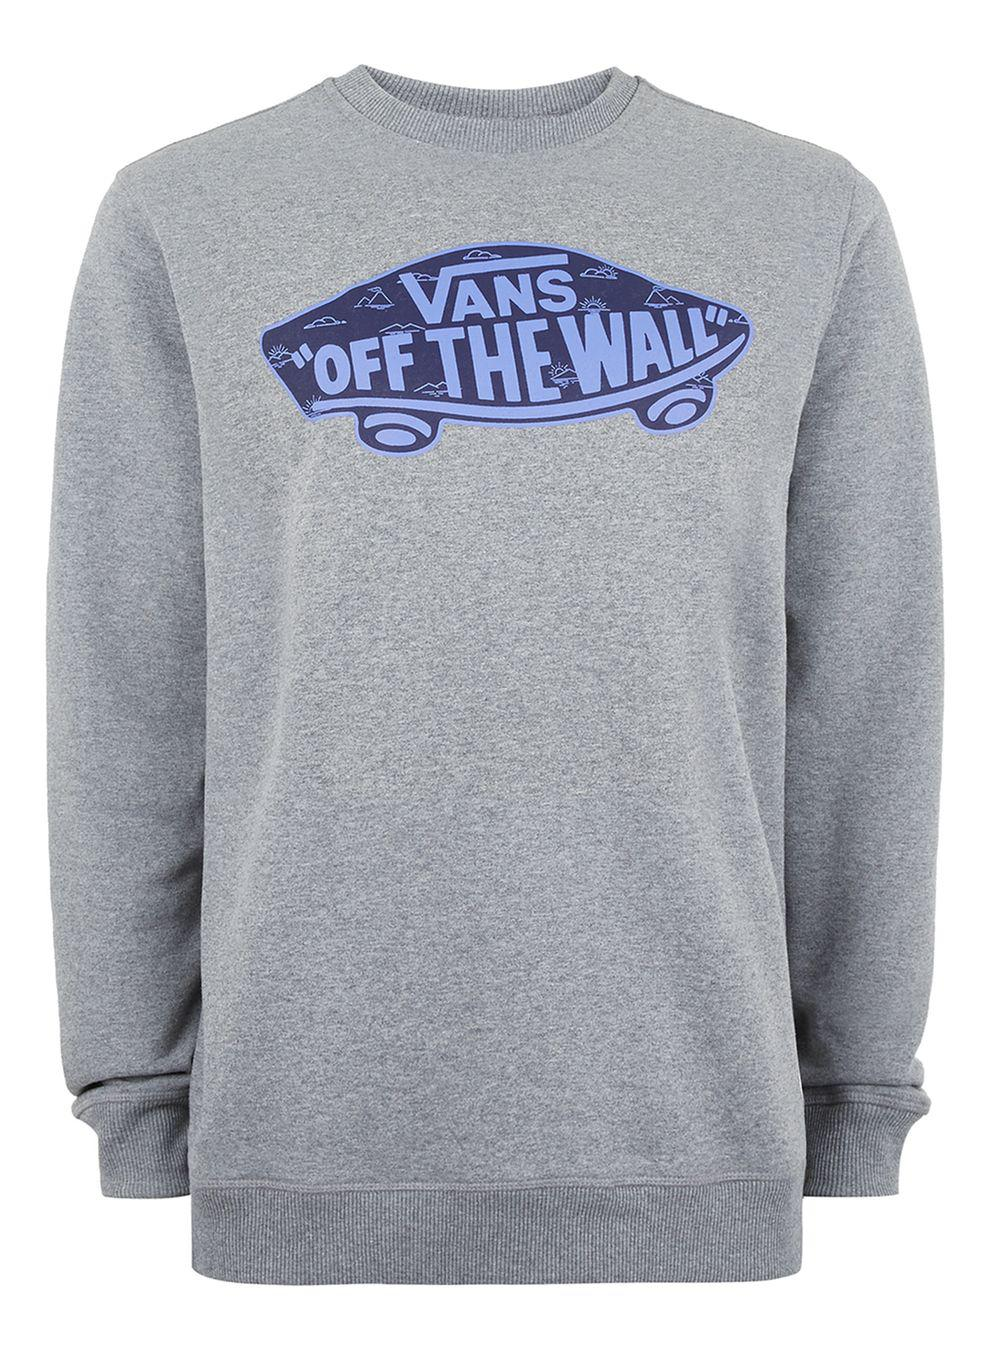 213a3c003dea6b TOPMAN Vans Grey  off The Wall  Sweatshirt in Gray for Men - Lyst